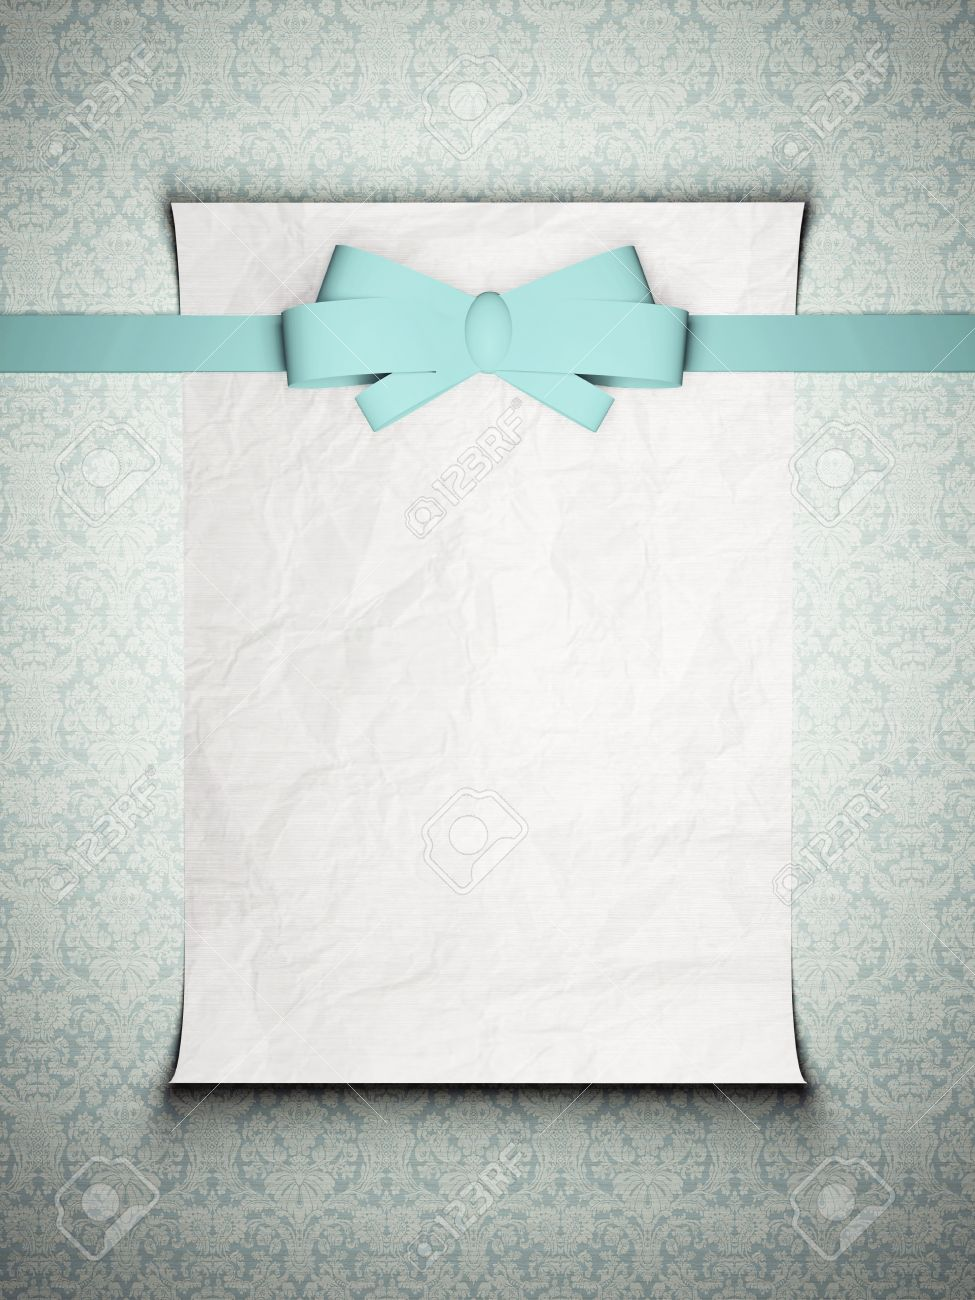 wedding invitation card with blue ribbon in front on the vintage